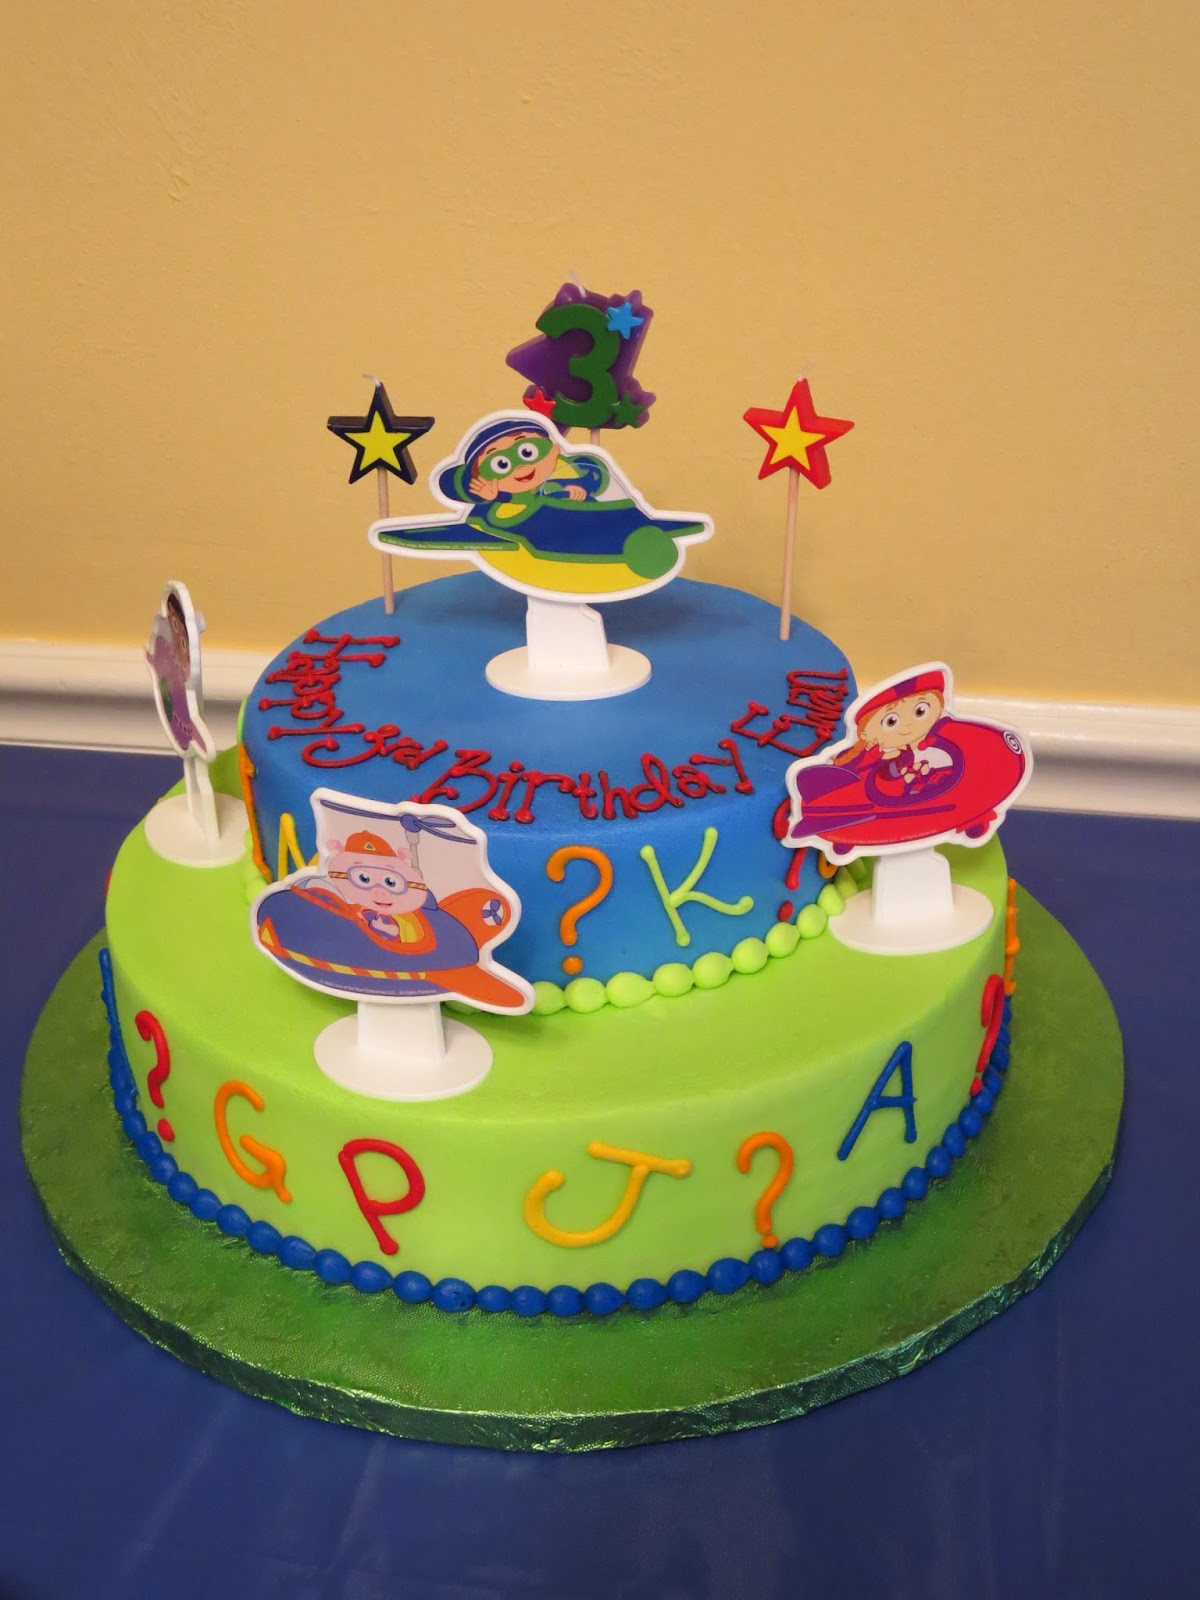 Best ideas about Super Why Birthday Cake . Save or Pin Ewan s Third Birthday Now.